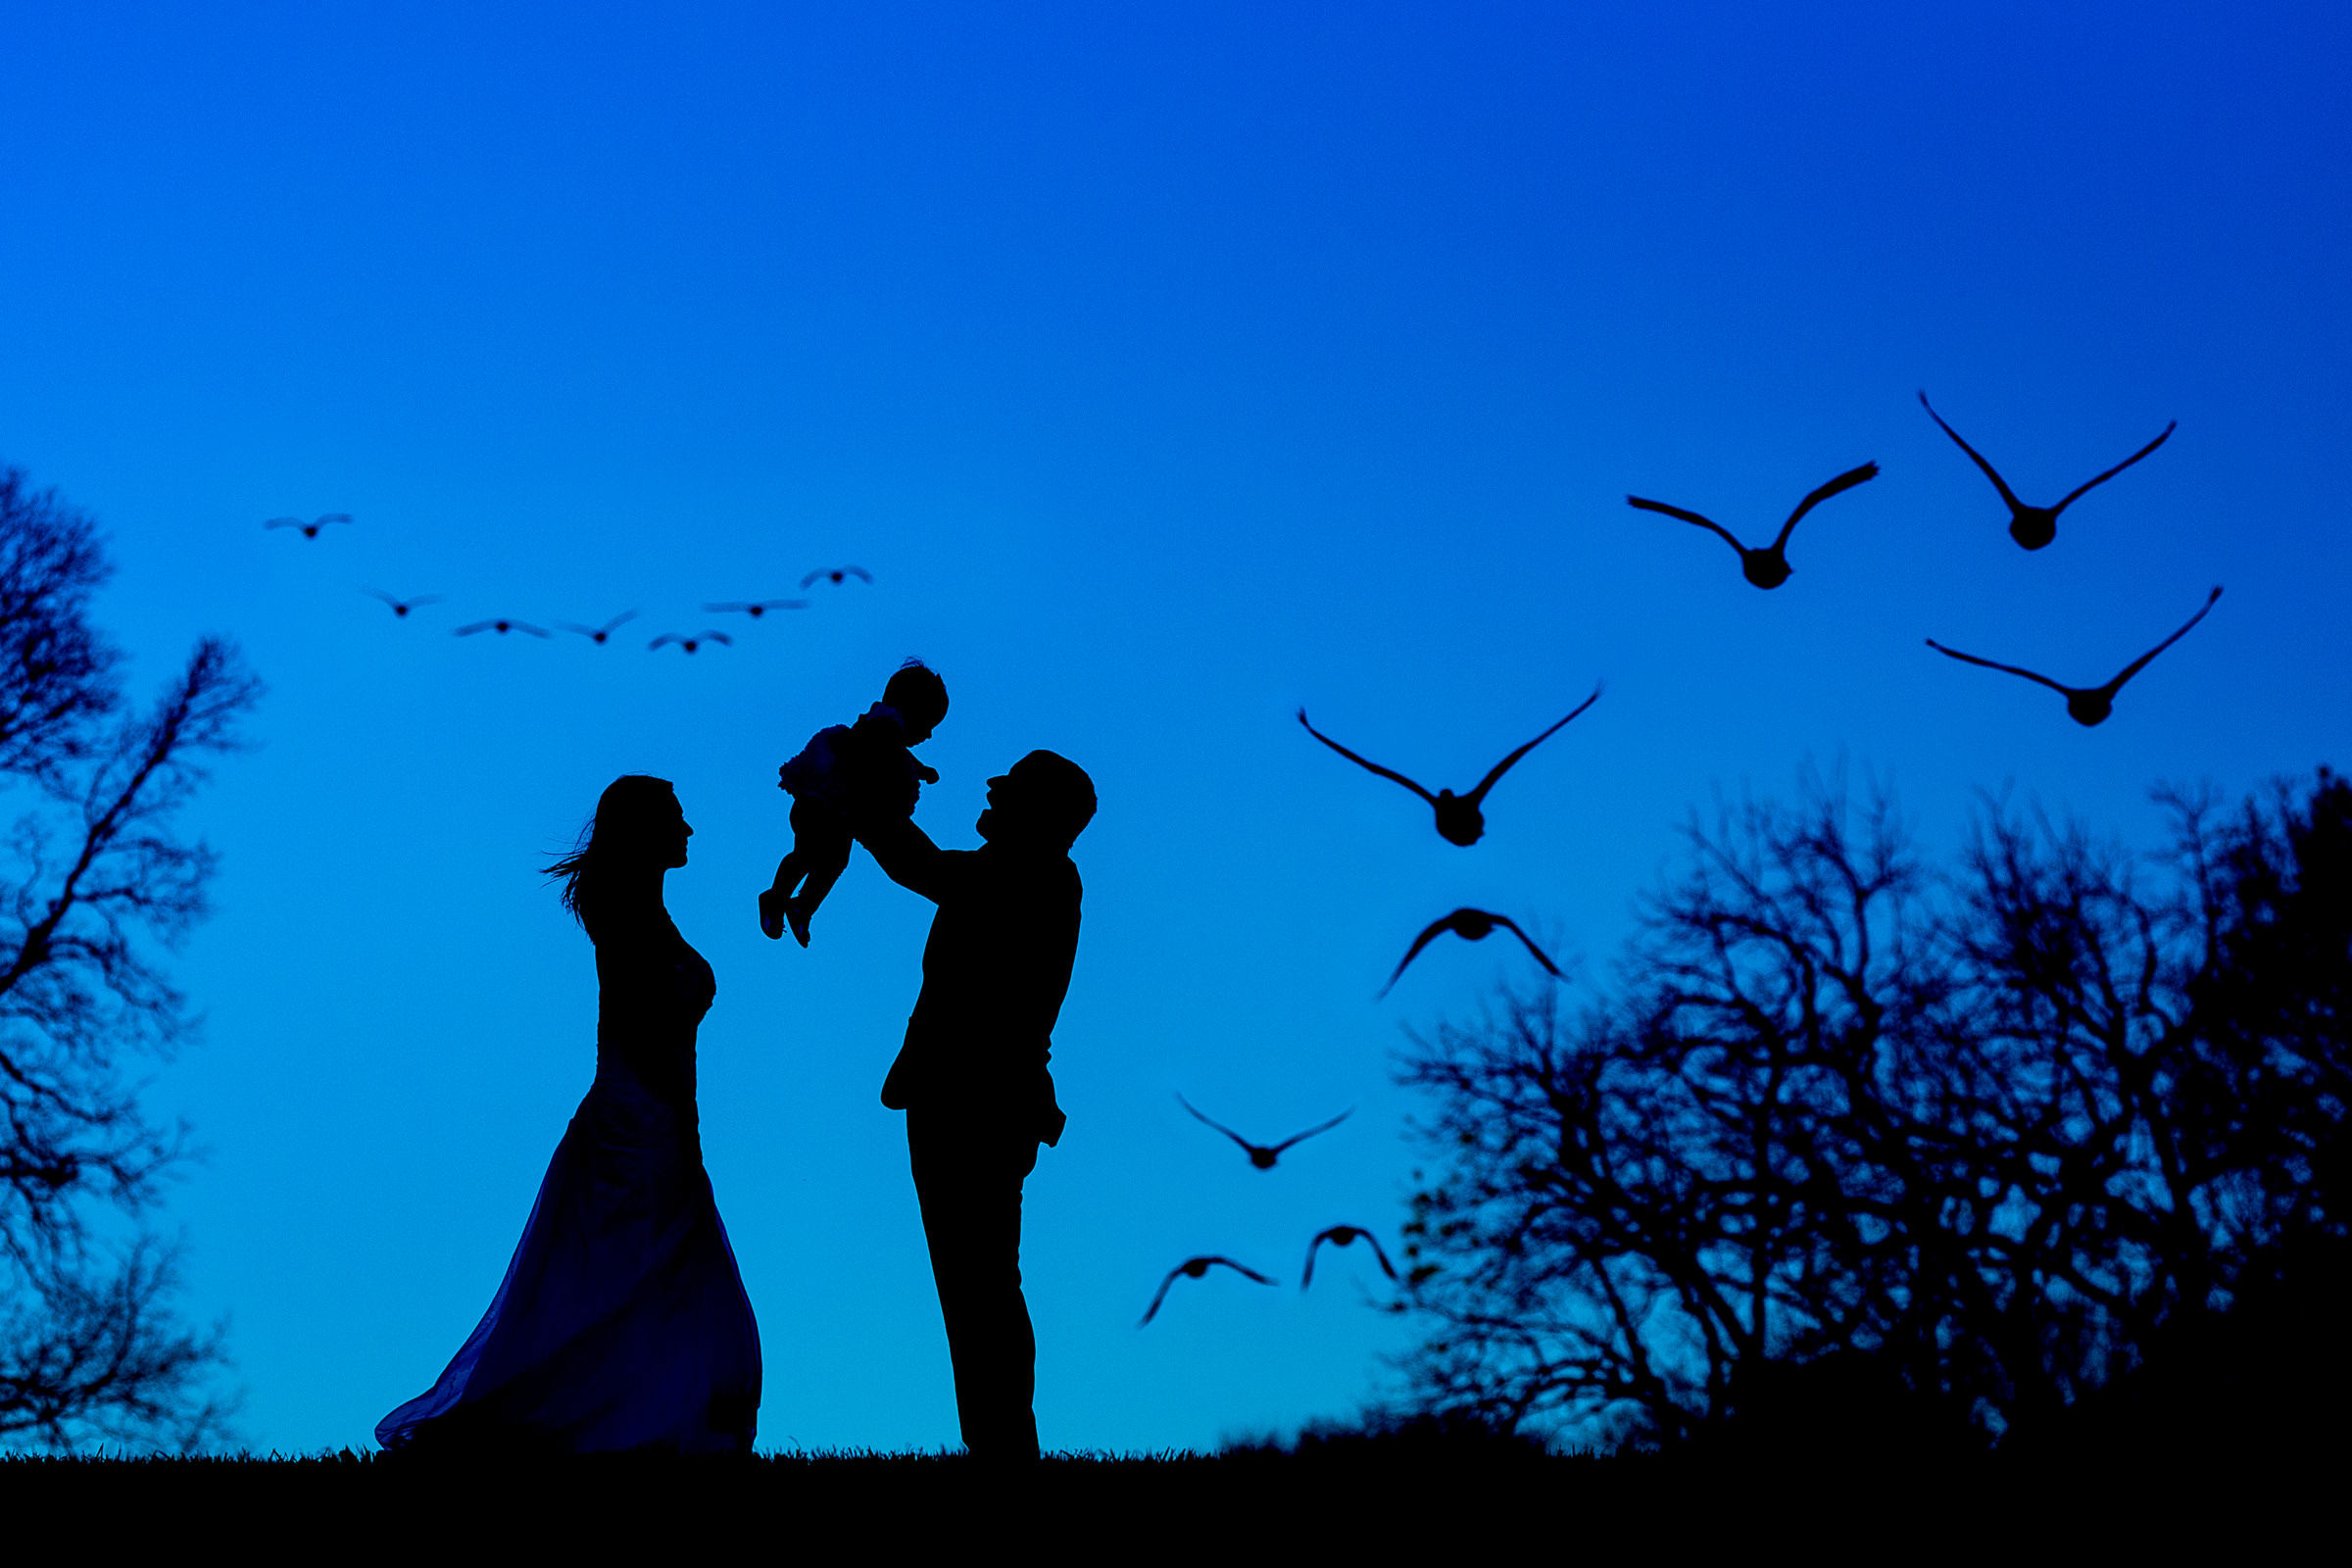 Couple silhouette with baby and birds against blue sky - photo by Procopio Photography